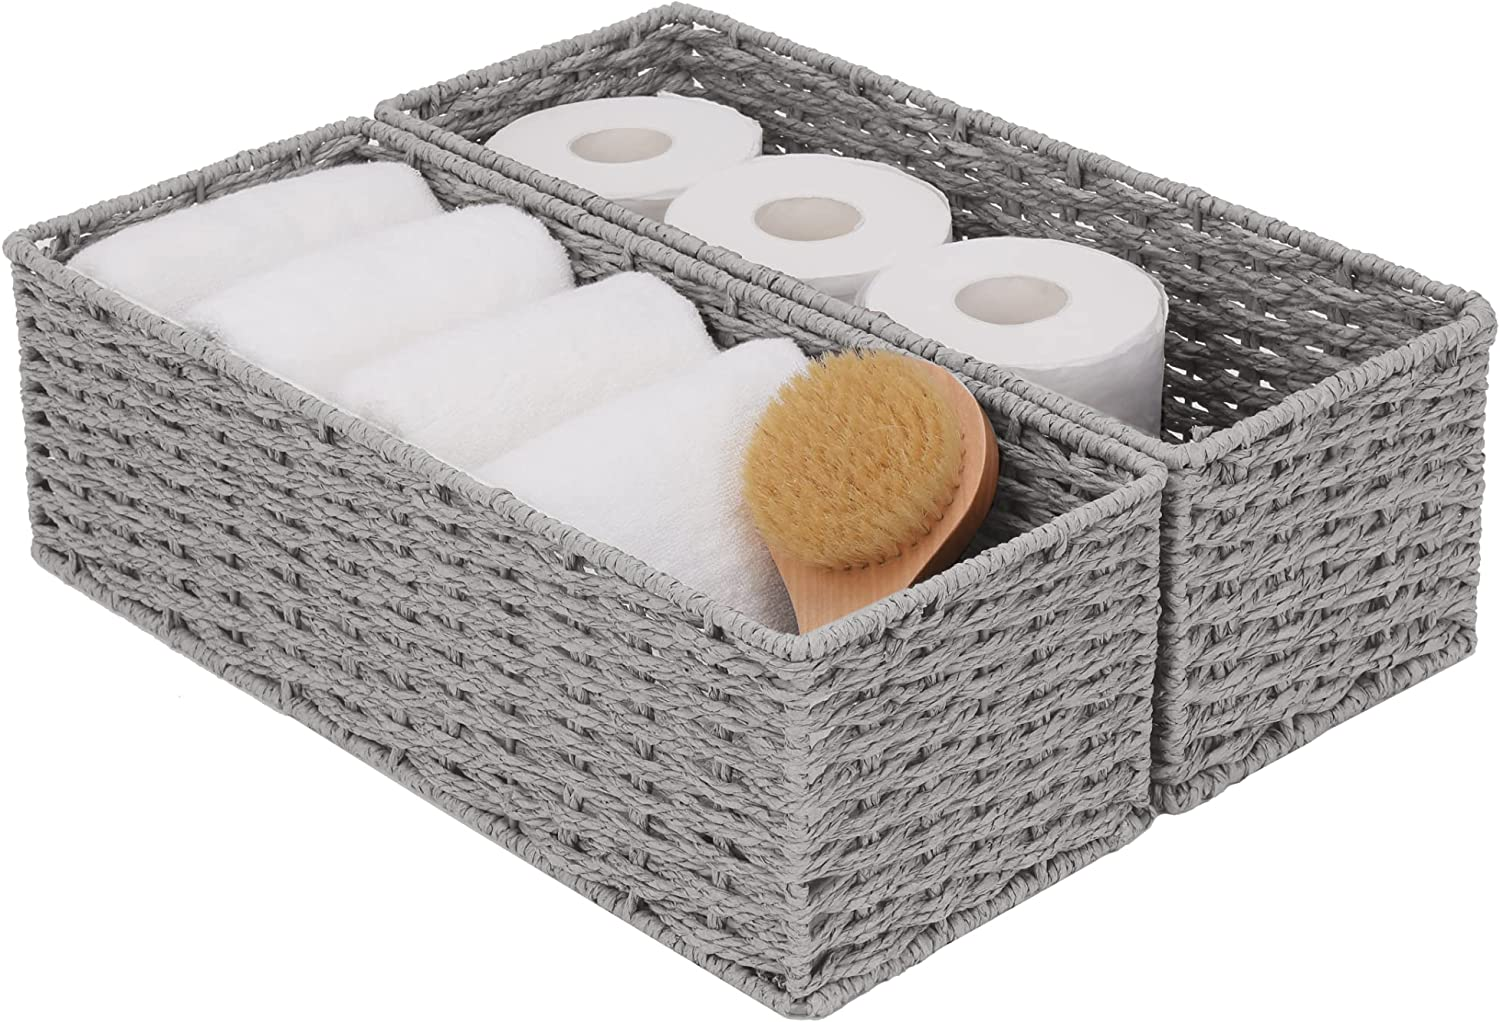 StorageWorks Round Paper Rope Max 63% OFF Japan's largest assortment Woven Bathroom Sto Basket Storage